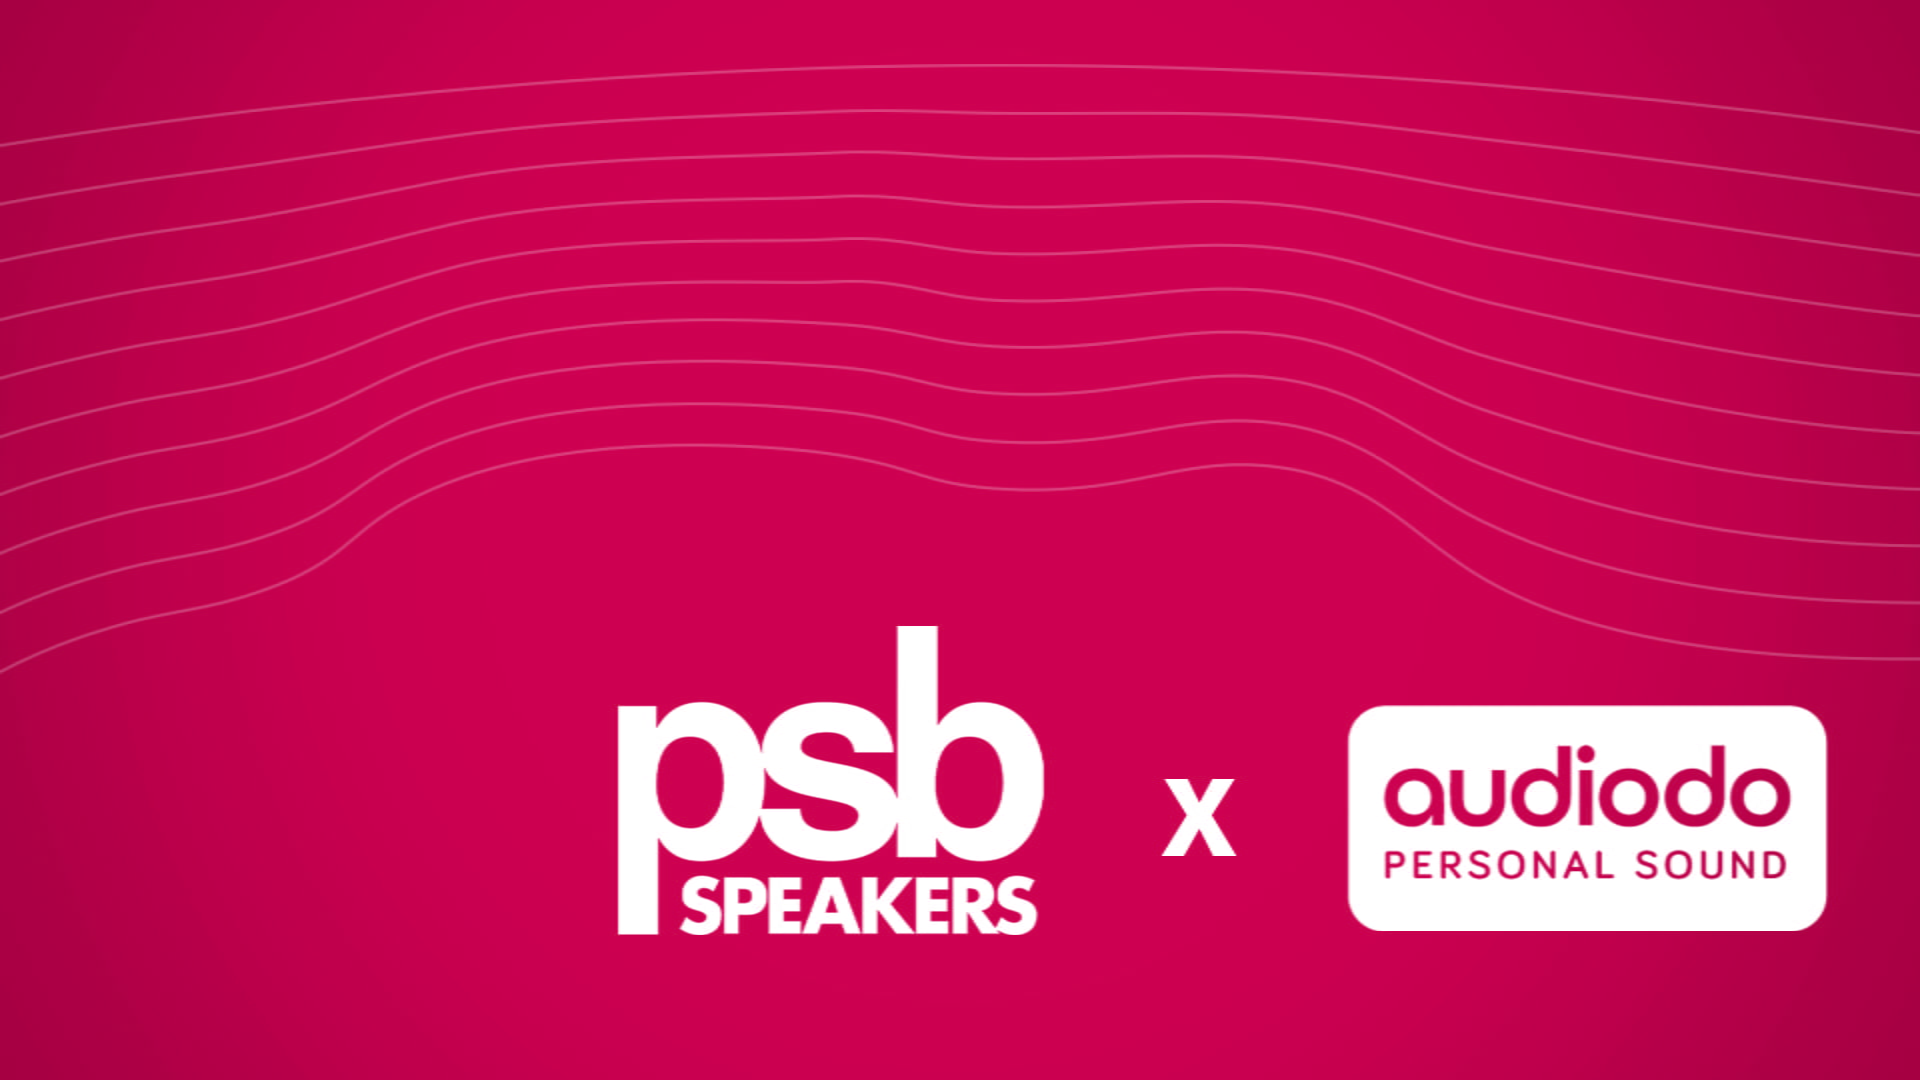 PSB Speakers Announces Partnership With Audiodo